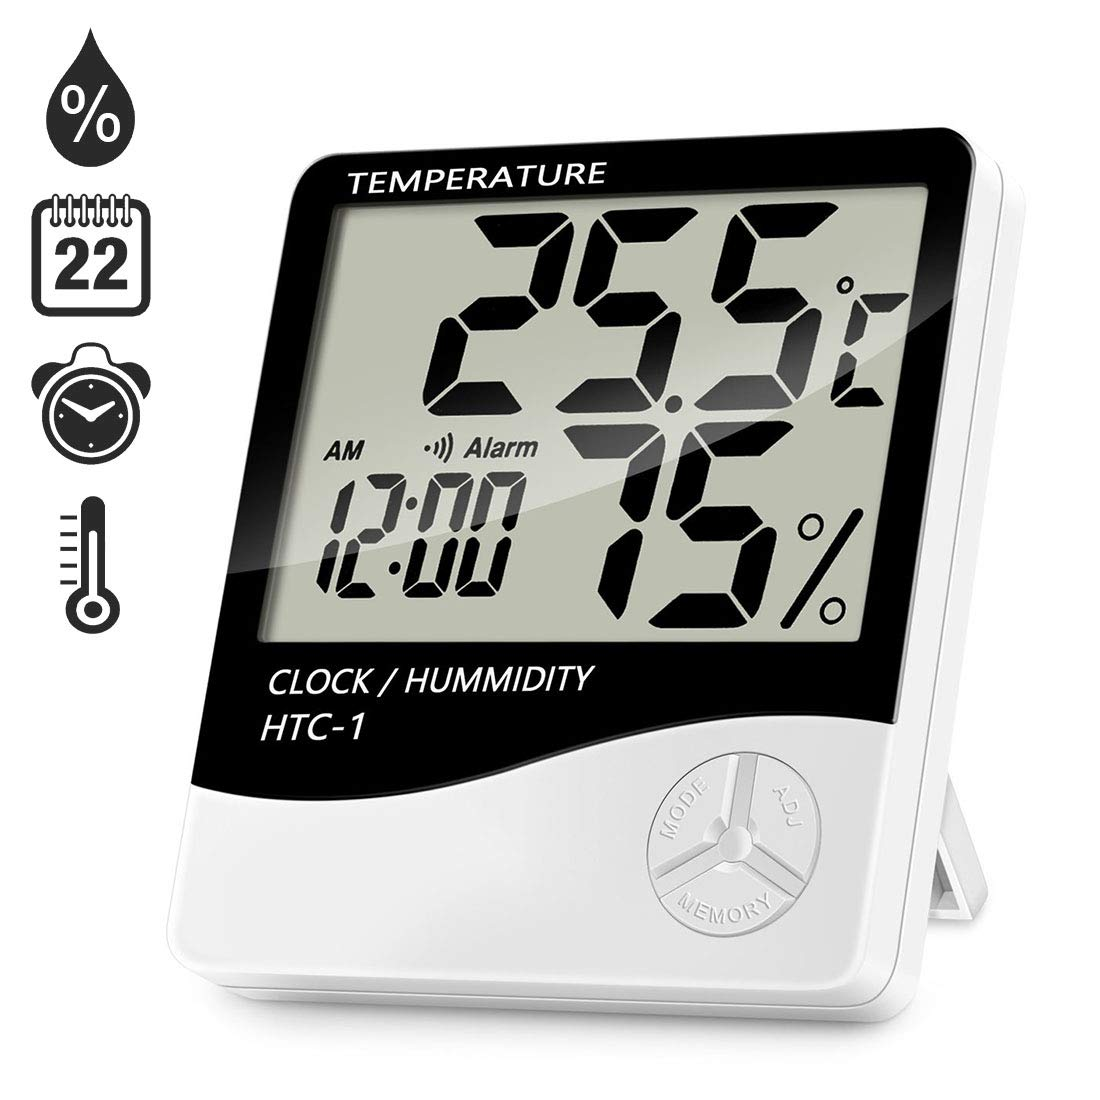 80% off REETWO Alarm Clock Thermometer Hygrometer